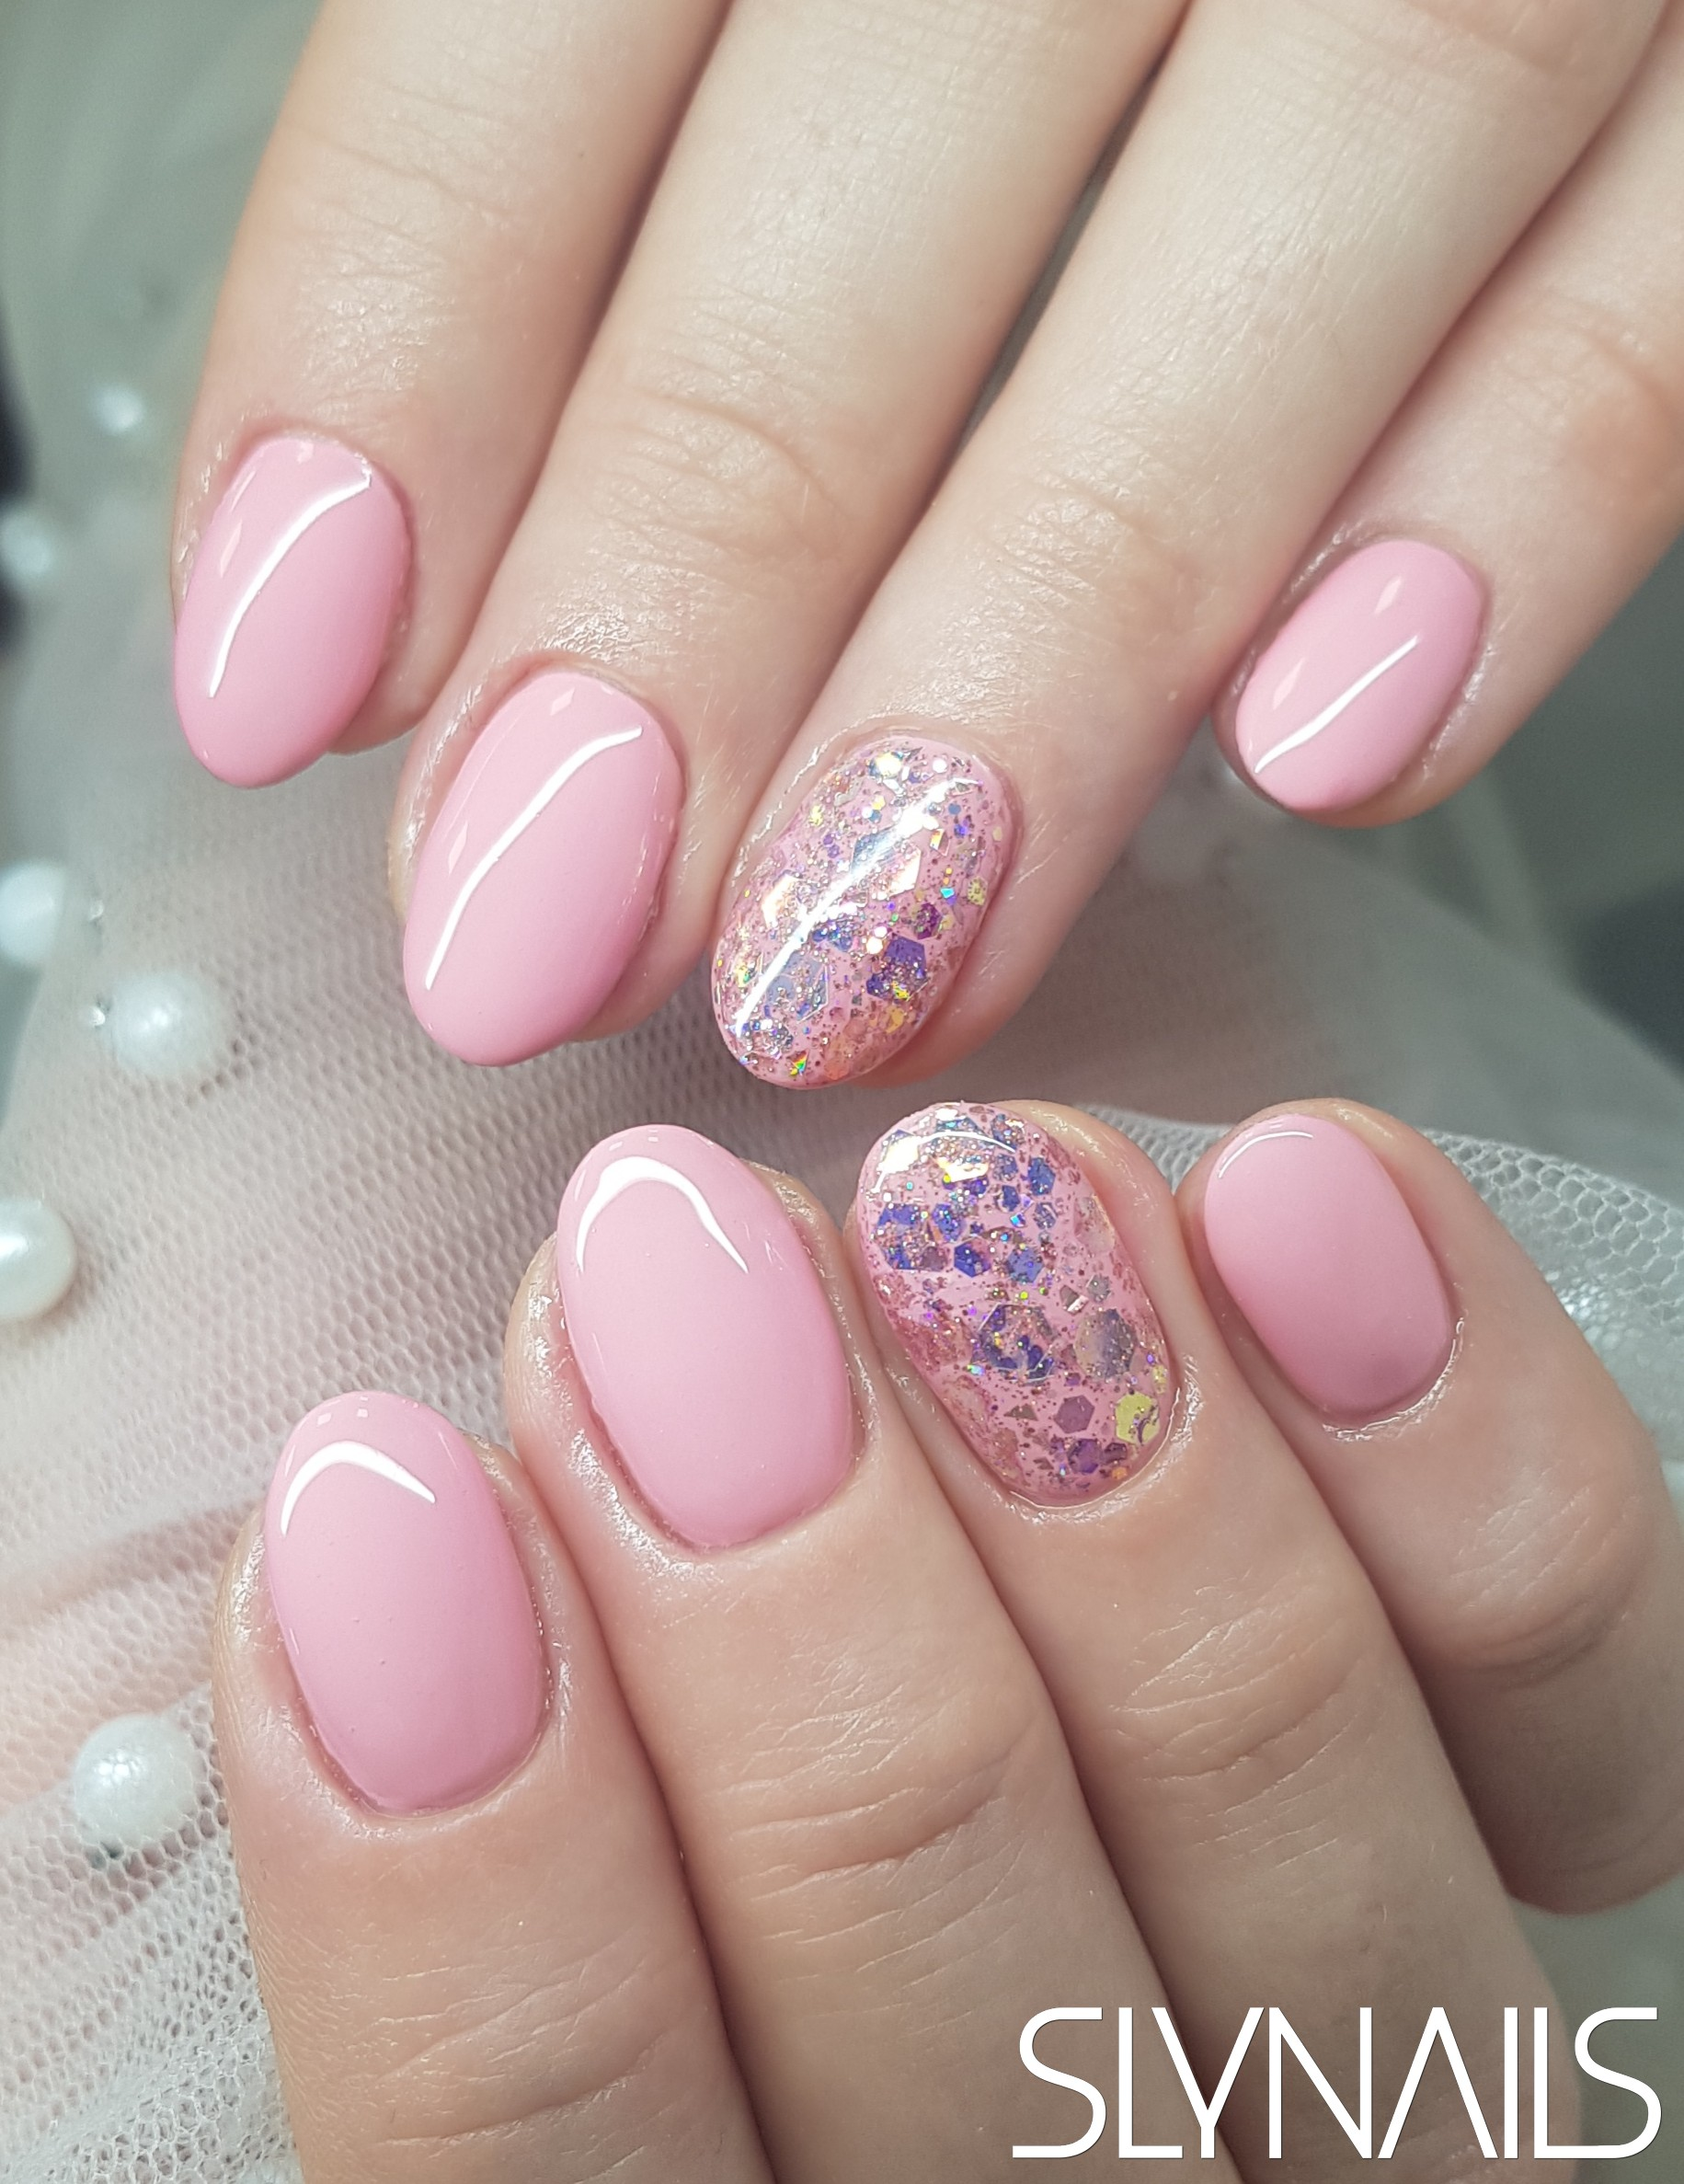 Gel-lac (gel polish), Pink, Built-in decoration, Mica, One color, Almond